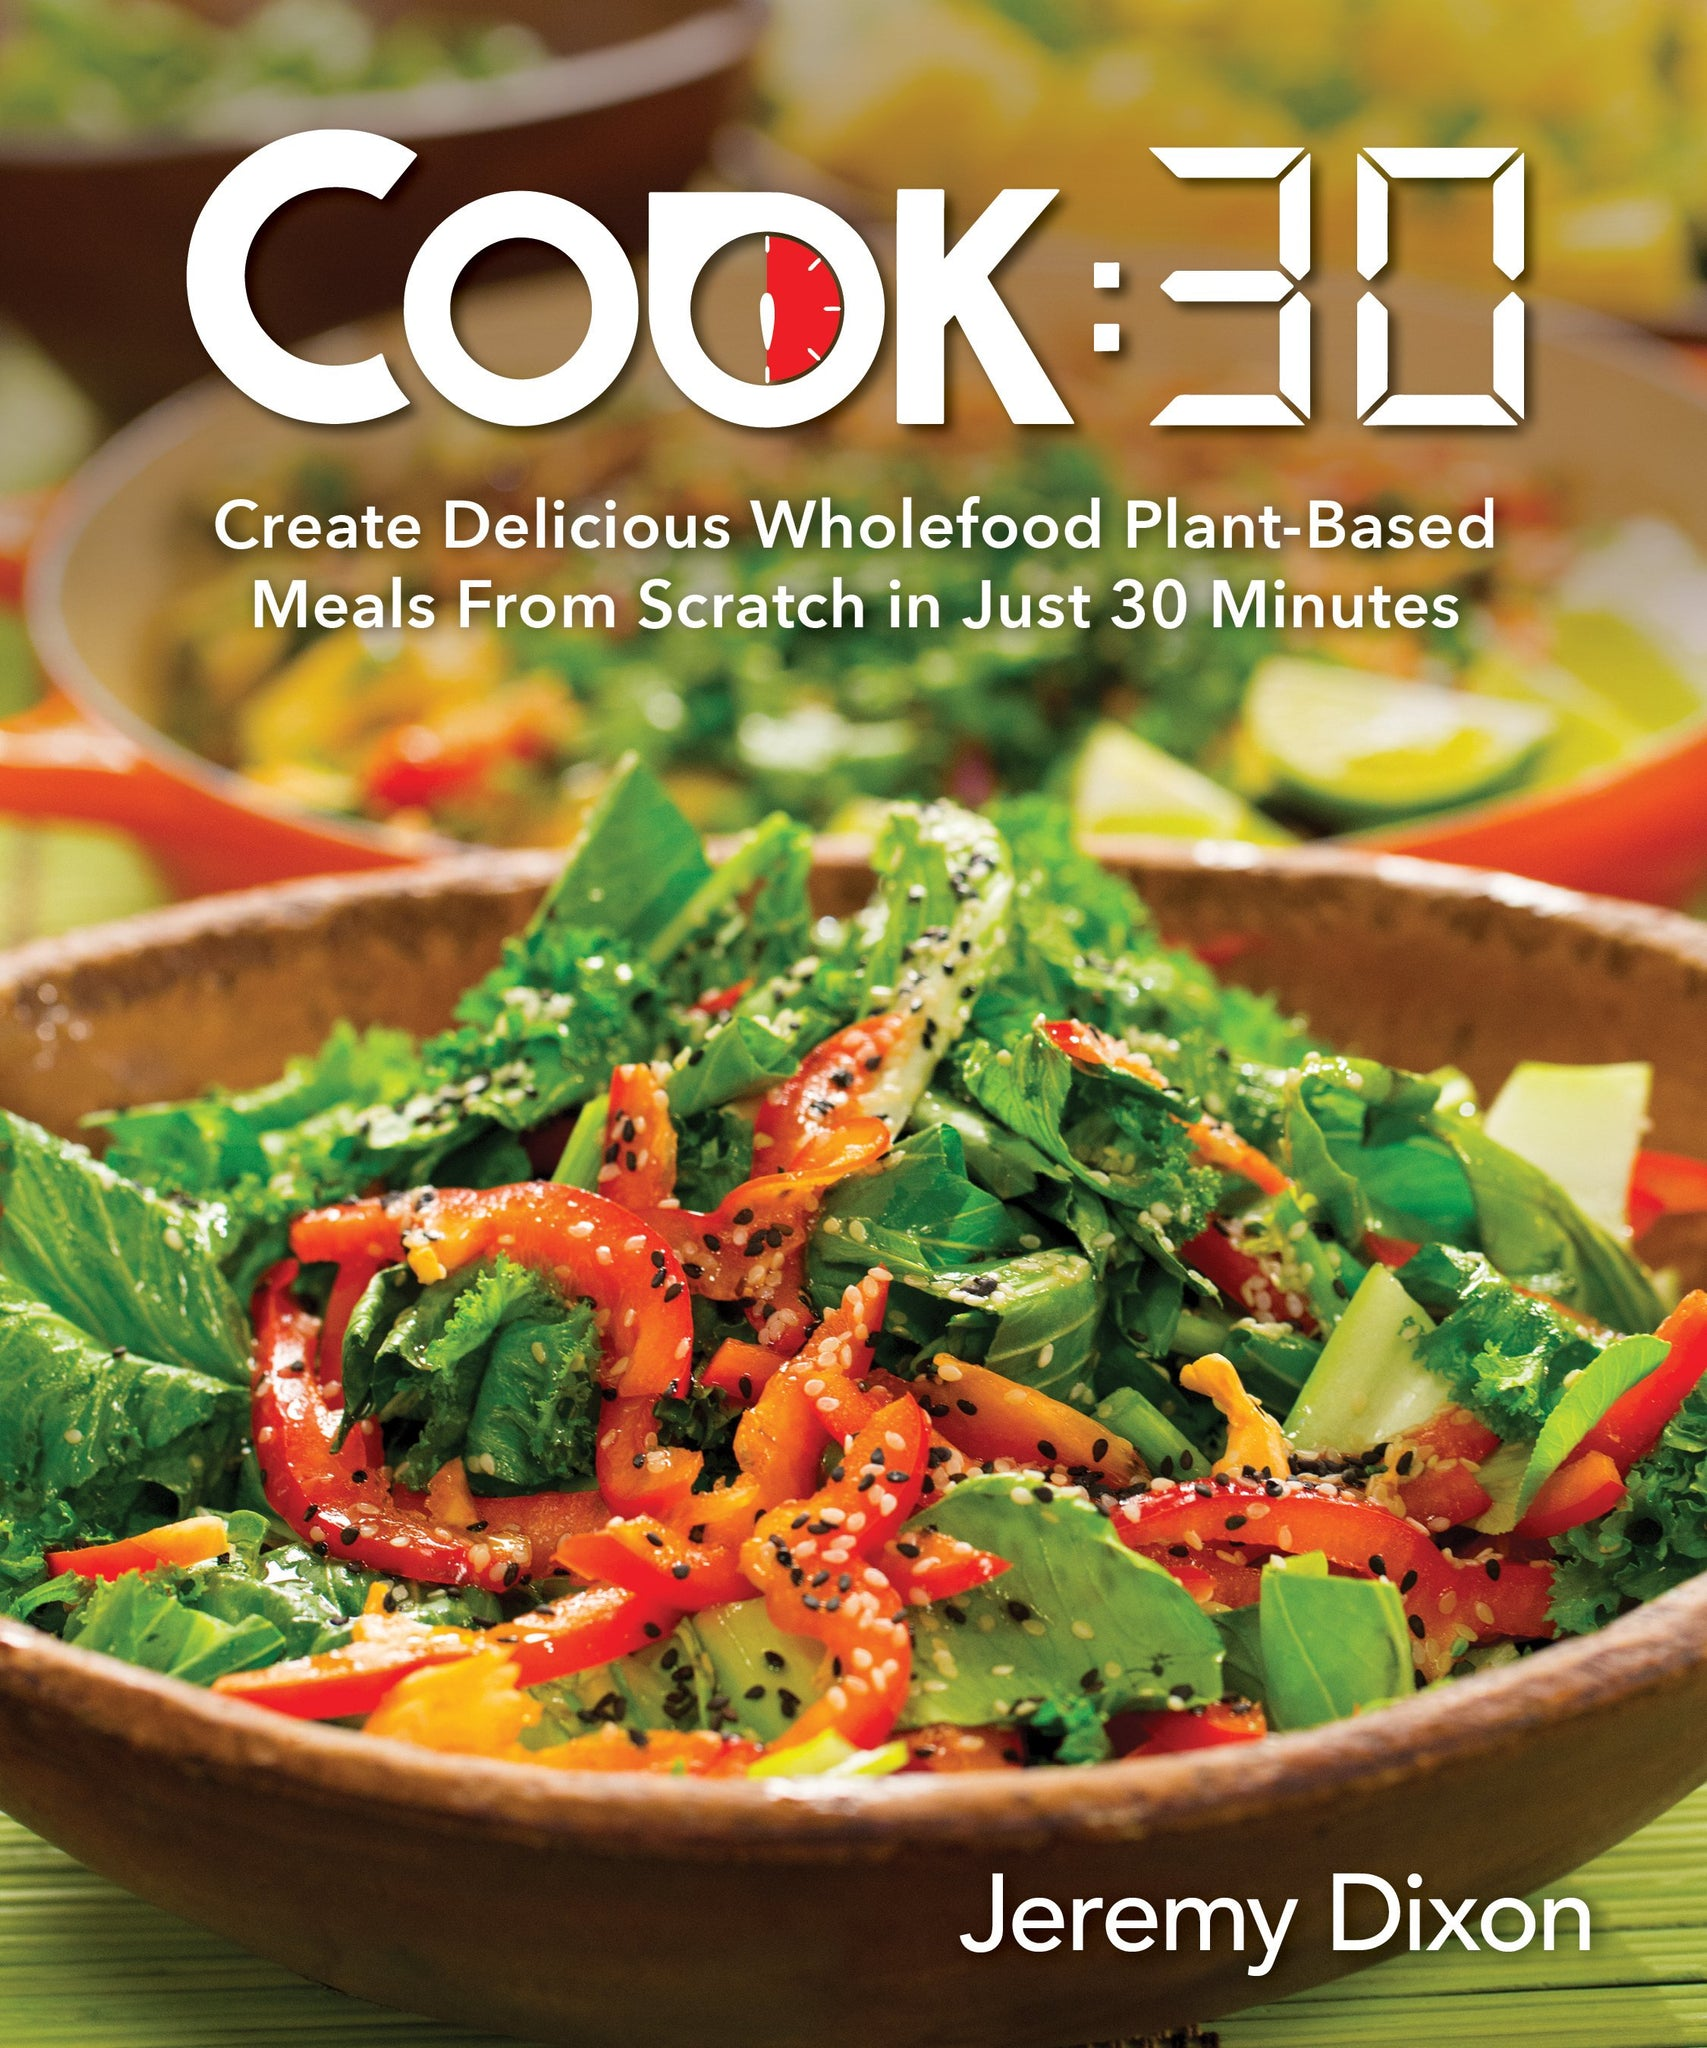 Cook:30: Create Delicious Wholefood Plant-Based Meals from Scratch in Just 30 Minutes